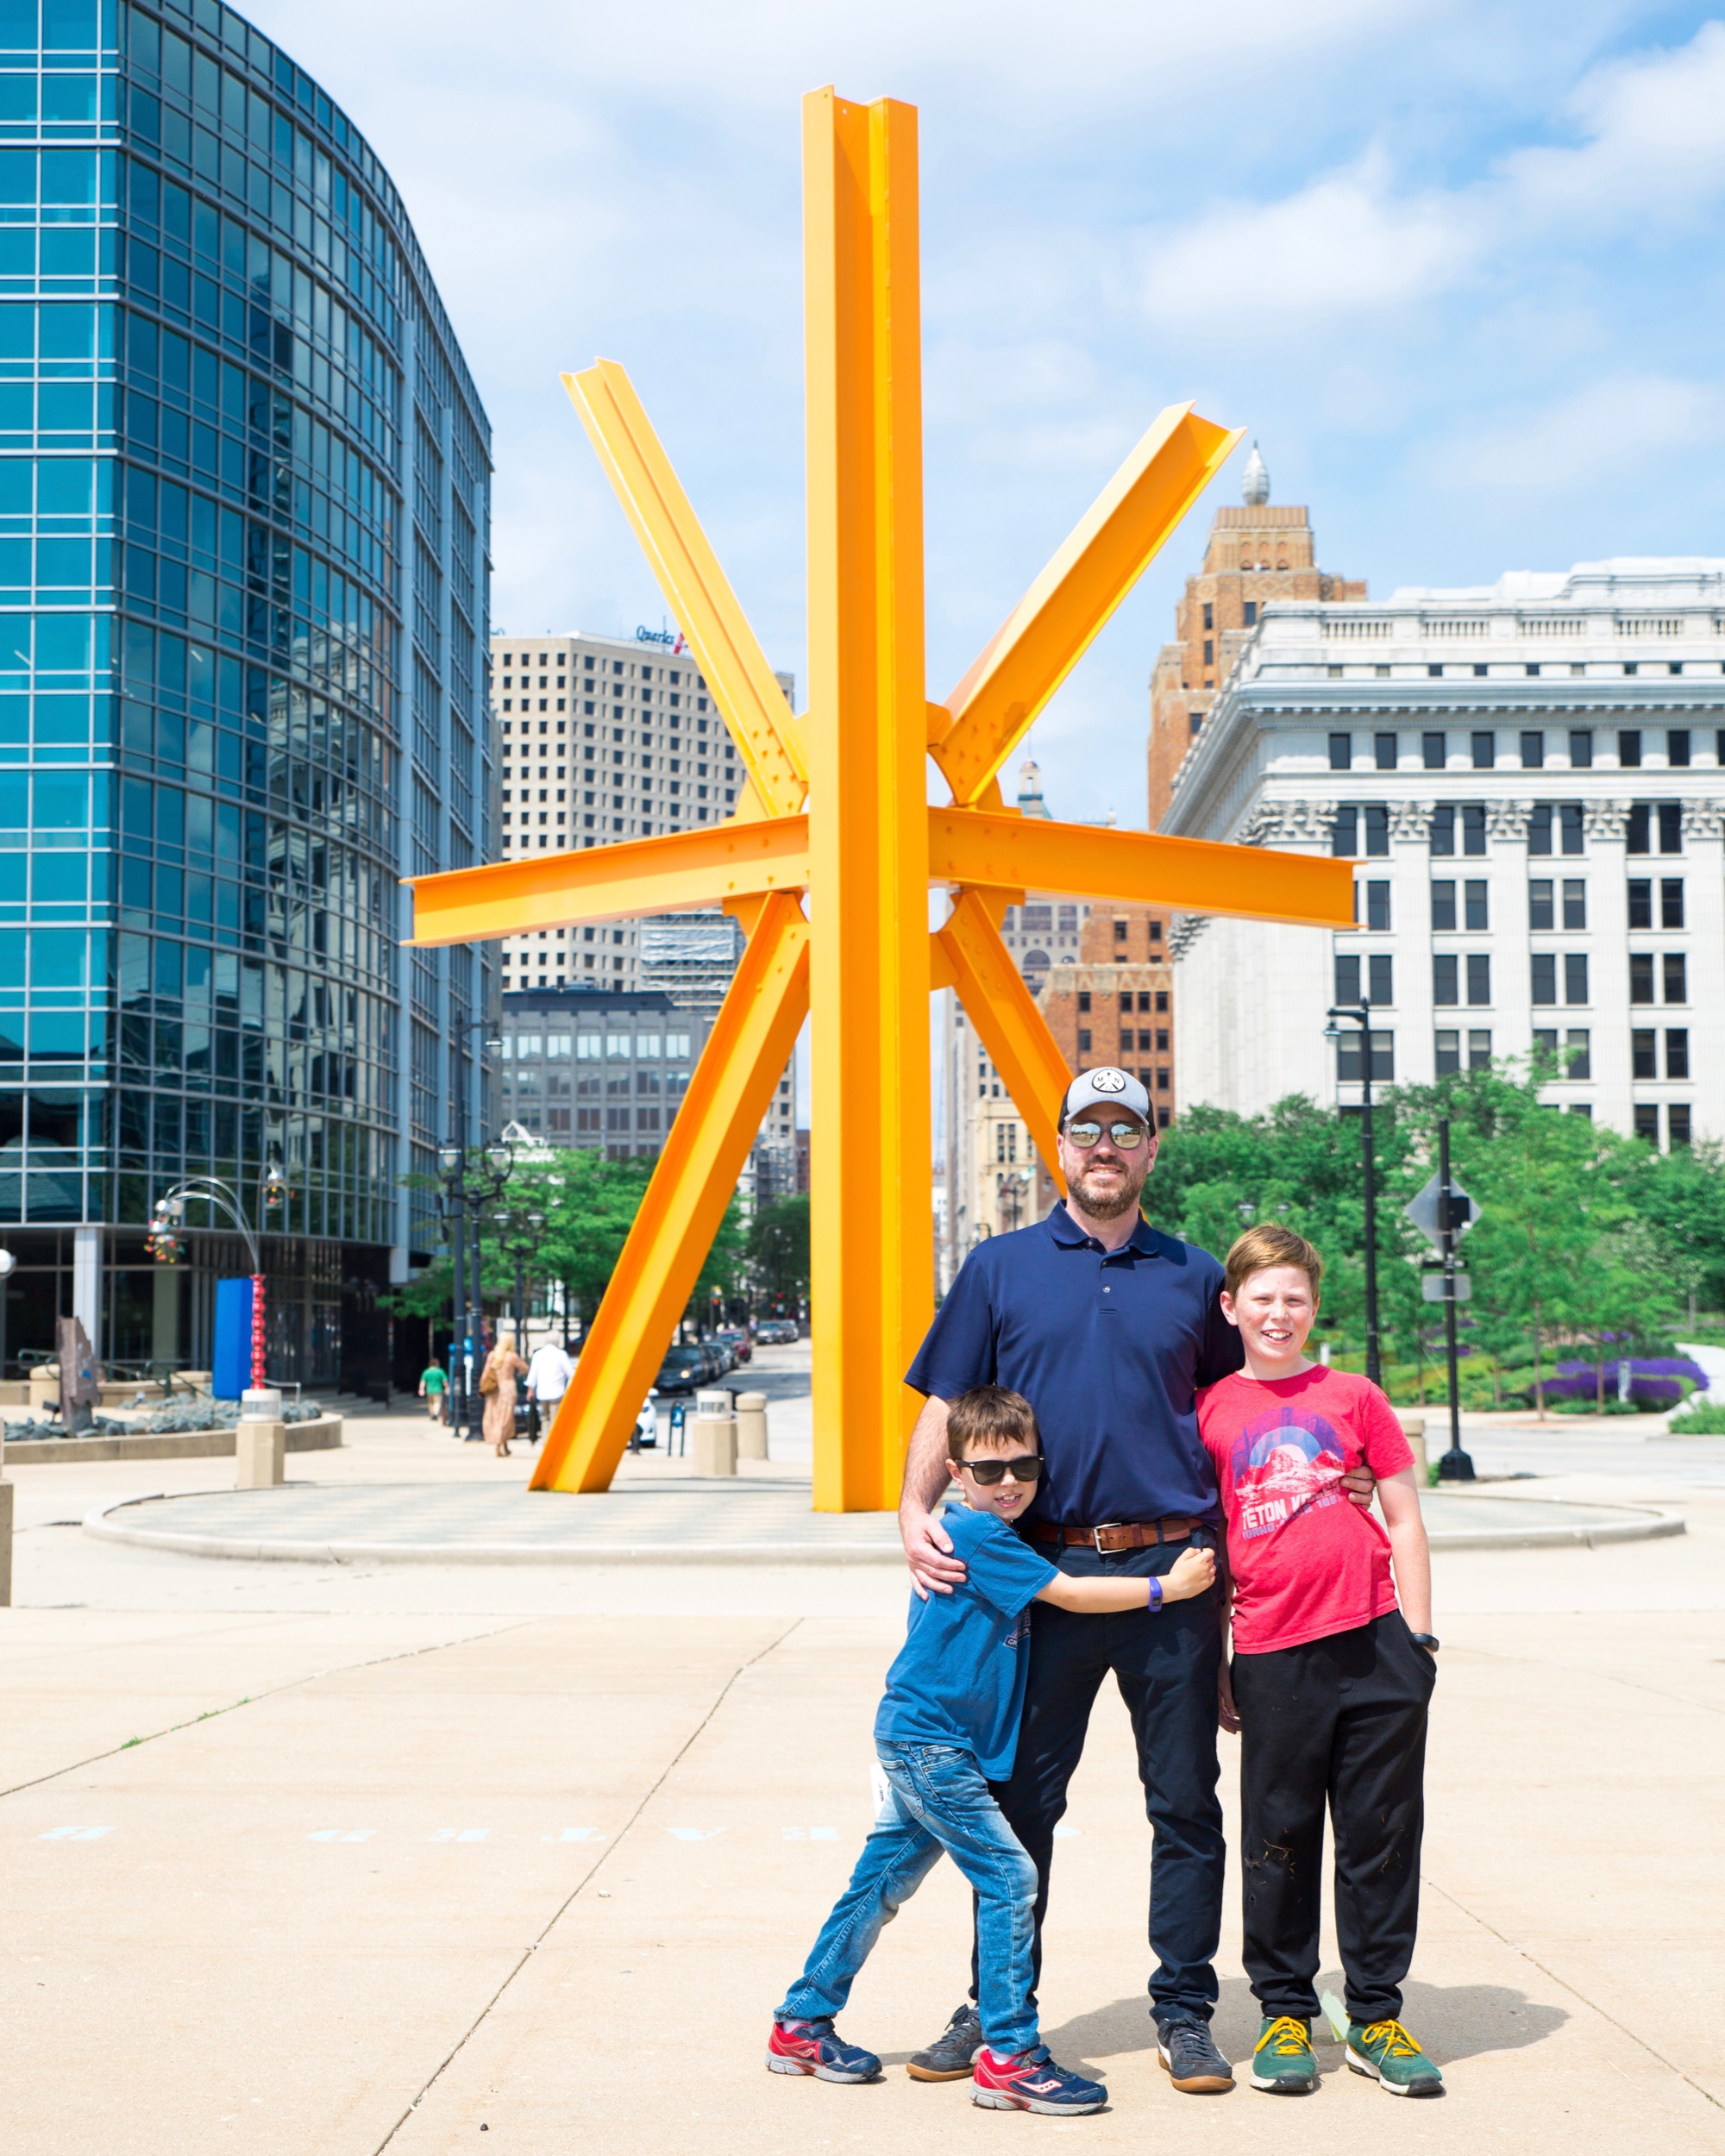 """My boys! They're standing in front of the Milwaukee-famous big orange sculpture """"The Calling."""" It was created by Mark di Suvero and installed in the 1980's."""